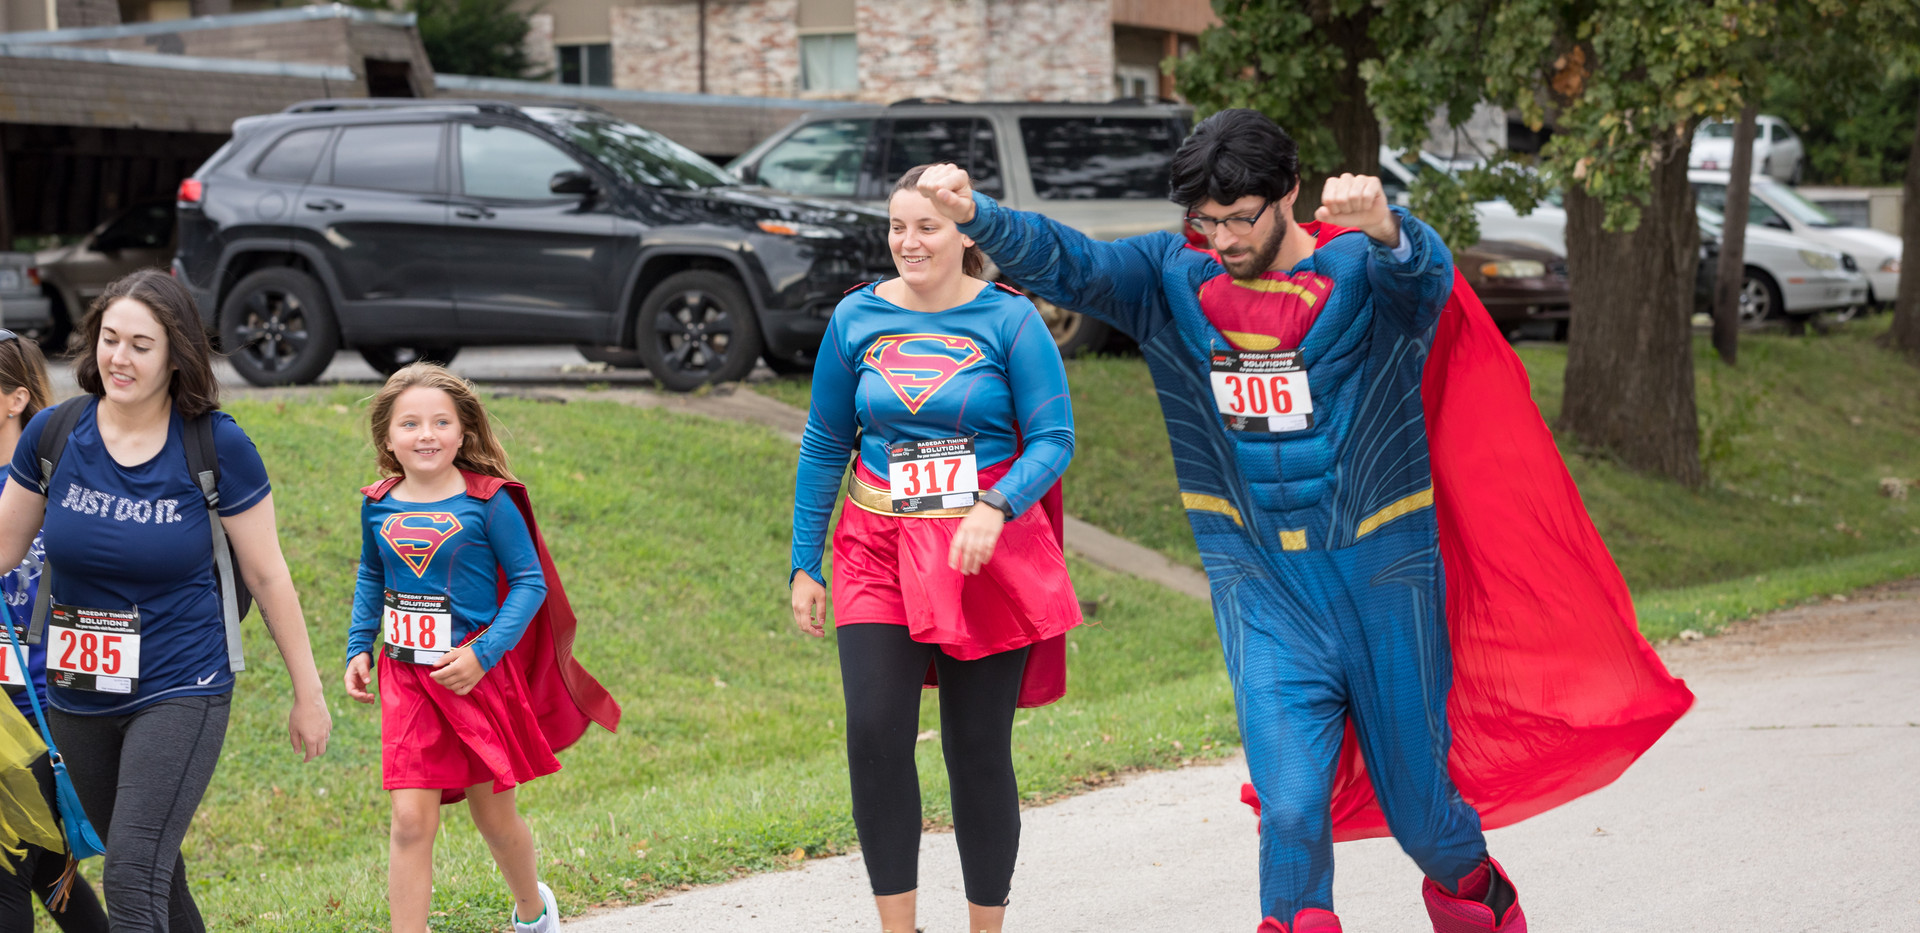 Superhero Run 2019